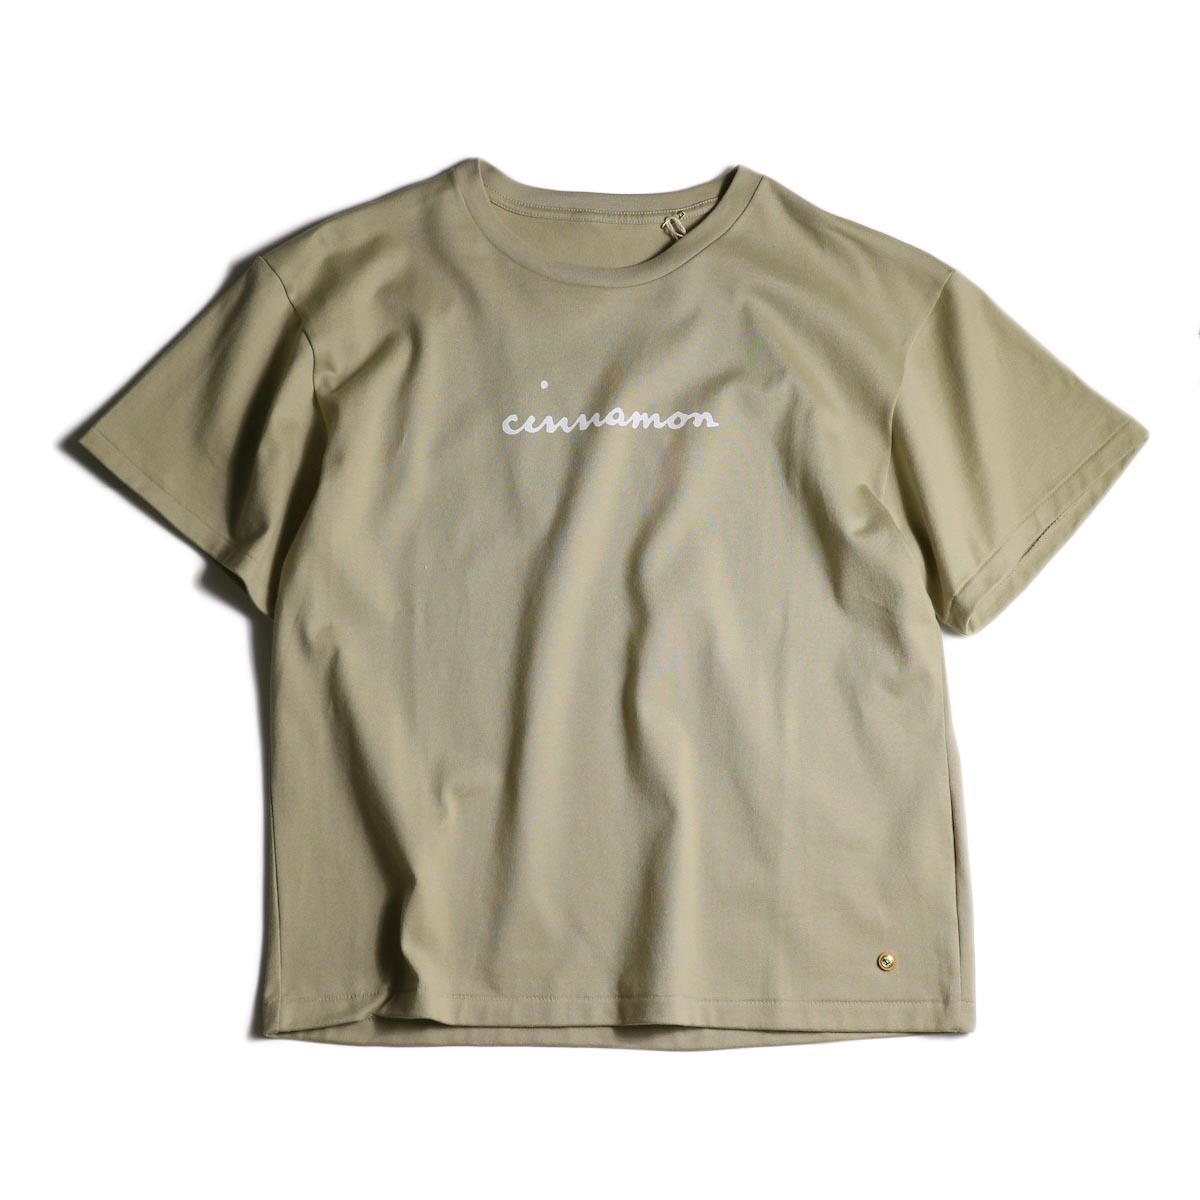 MASTER & Co. / Print T-Shrit (pistachio)